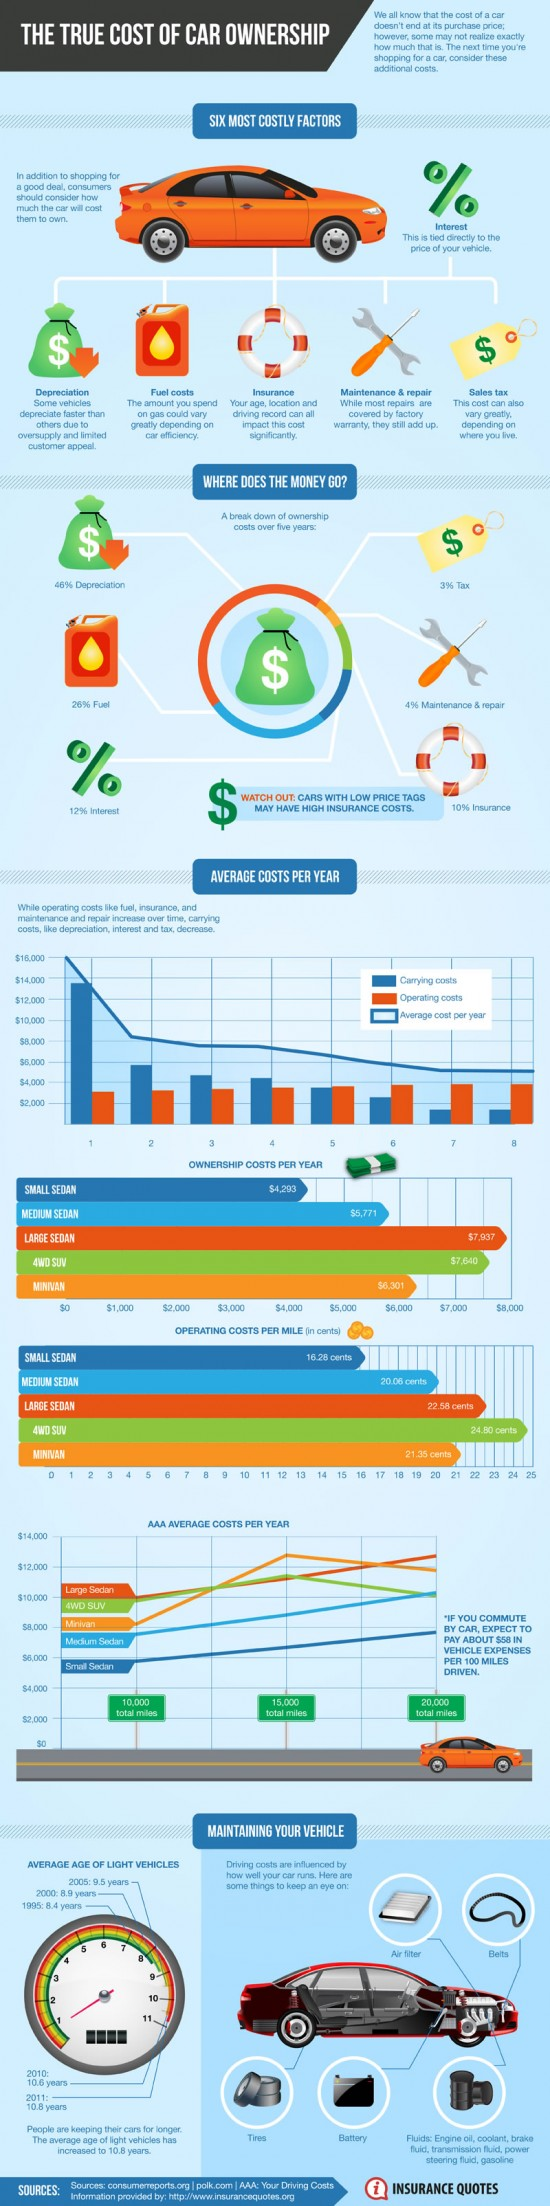 Cost-Car-Ownership-800-550x2206